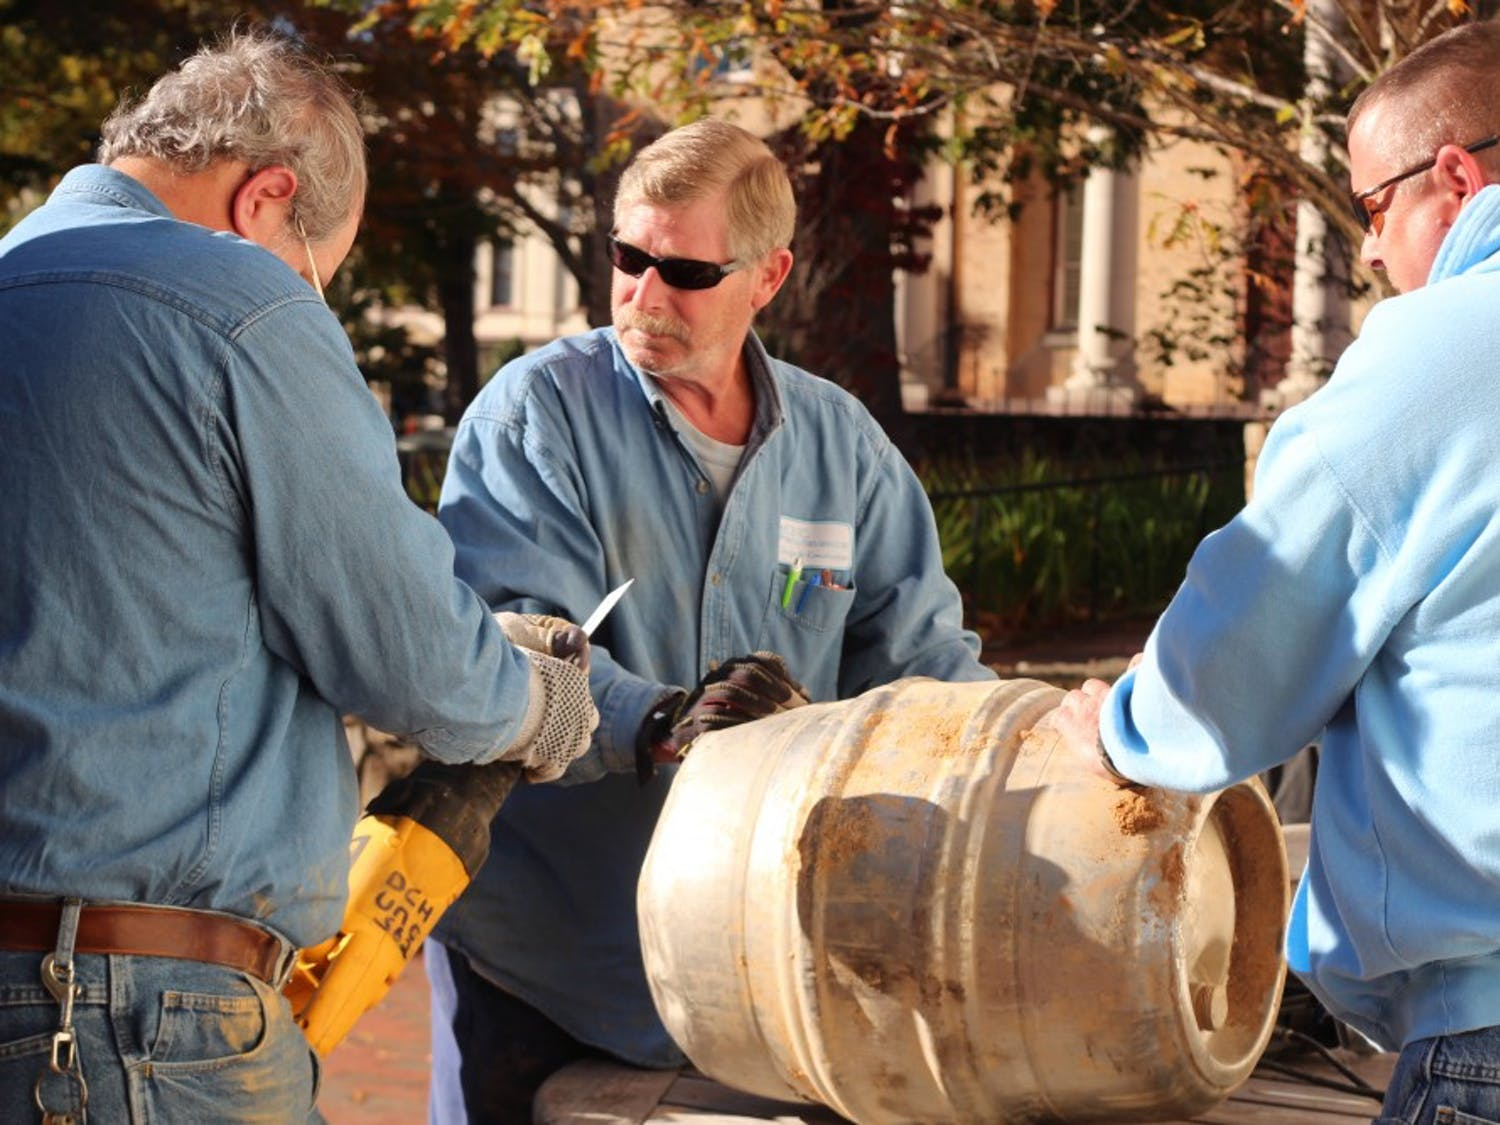 The graduating class of 1988 returned to campus to recover the time capsule they buried a quarter of a century earlier. The time capsule, a stainless steel keg donated by a then local bar, proved to be a challenge for the grounds workers that had to both dig it up and cut through it on Friday at 1 p.m. The keg was buried under a plaque on Polk Place between the flagpole and  South Building. The alumnae will be celebrating their 25th reunion during Homecoming weekend and look forward to exploring the capsule's artifacts in Wilson Library this week.